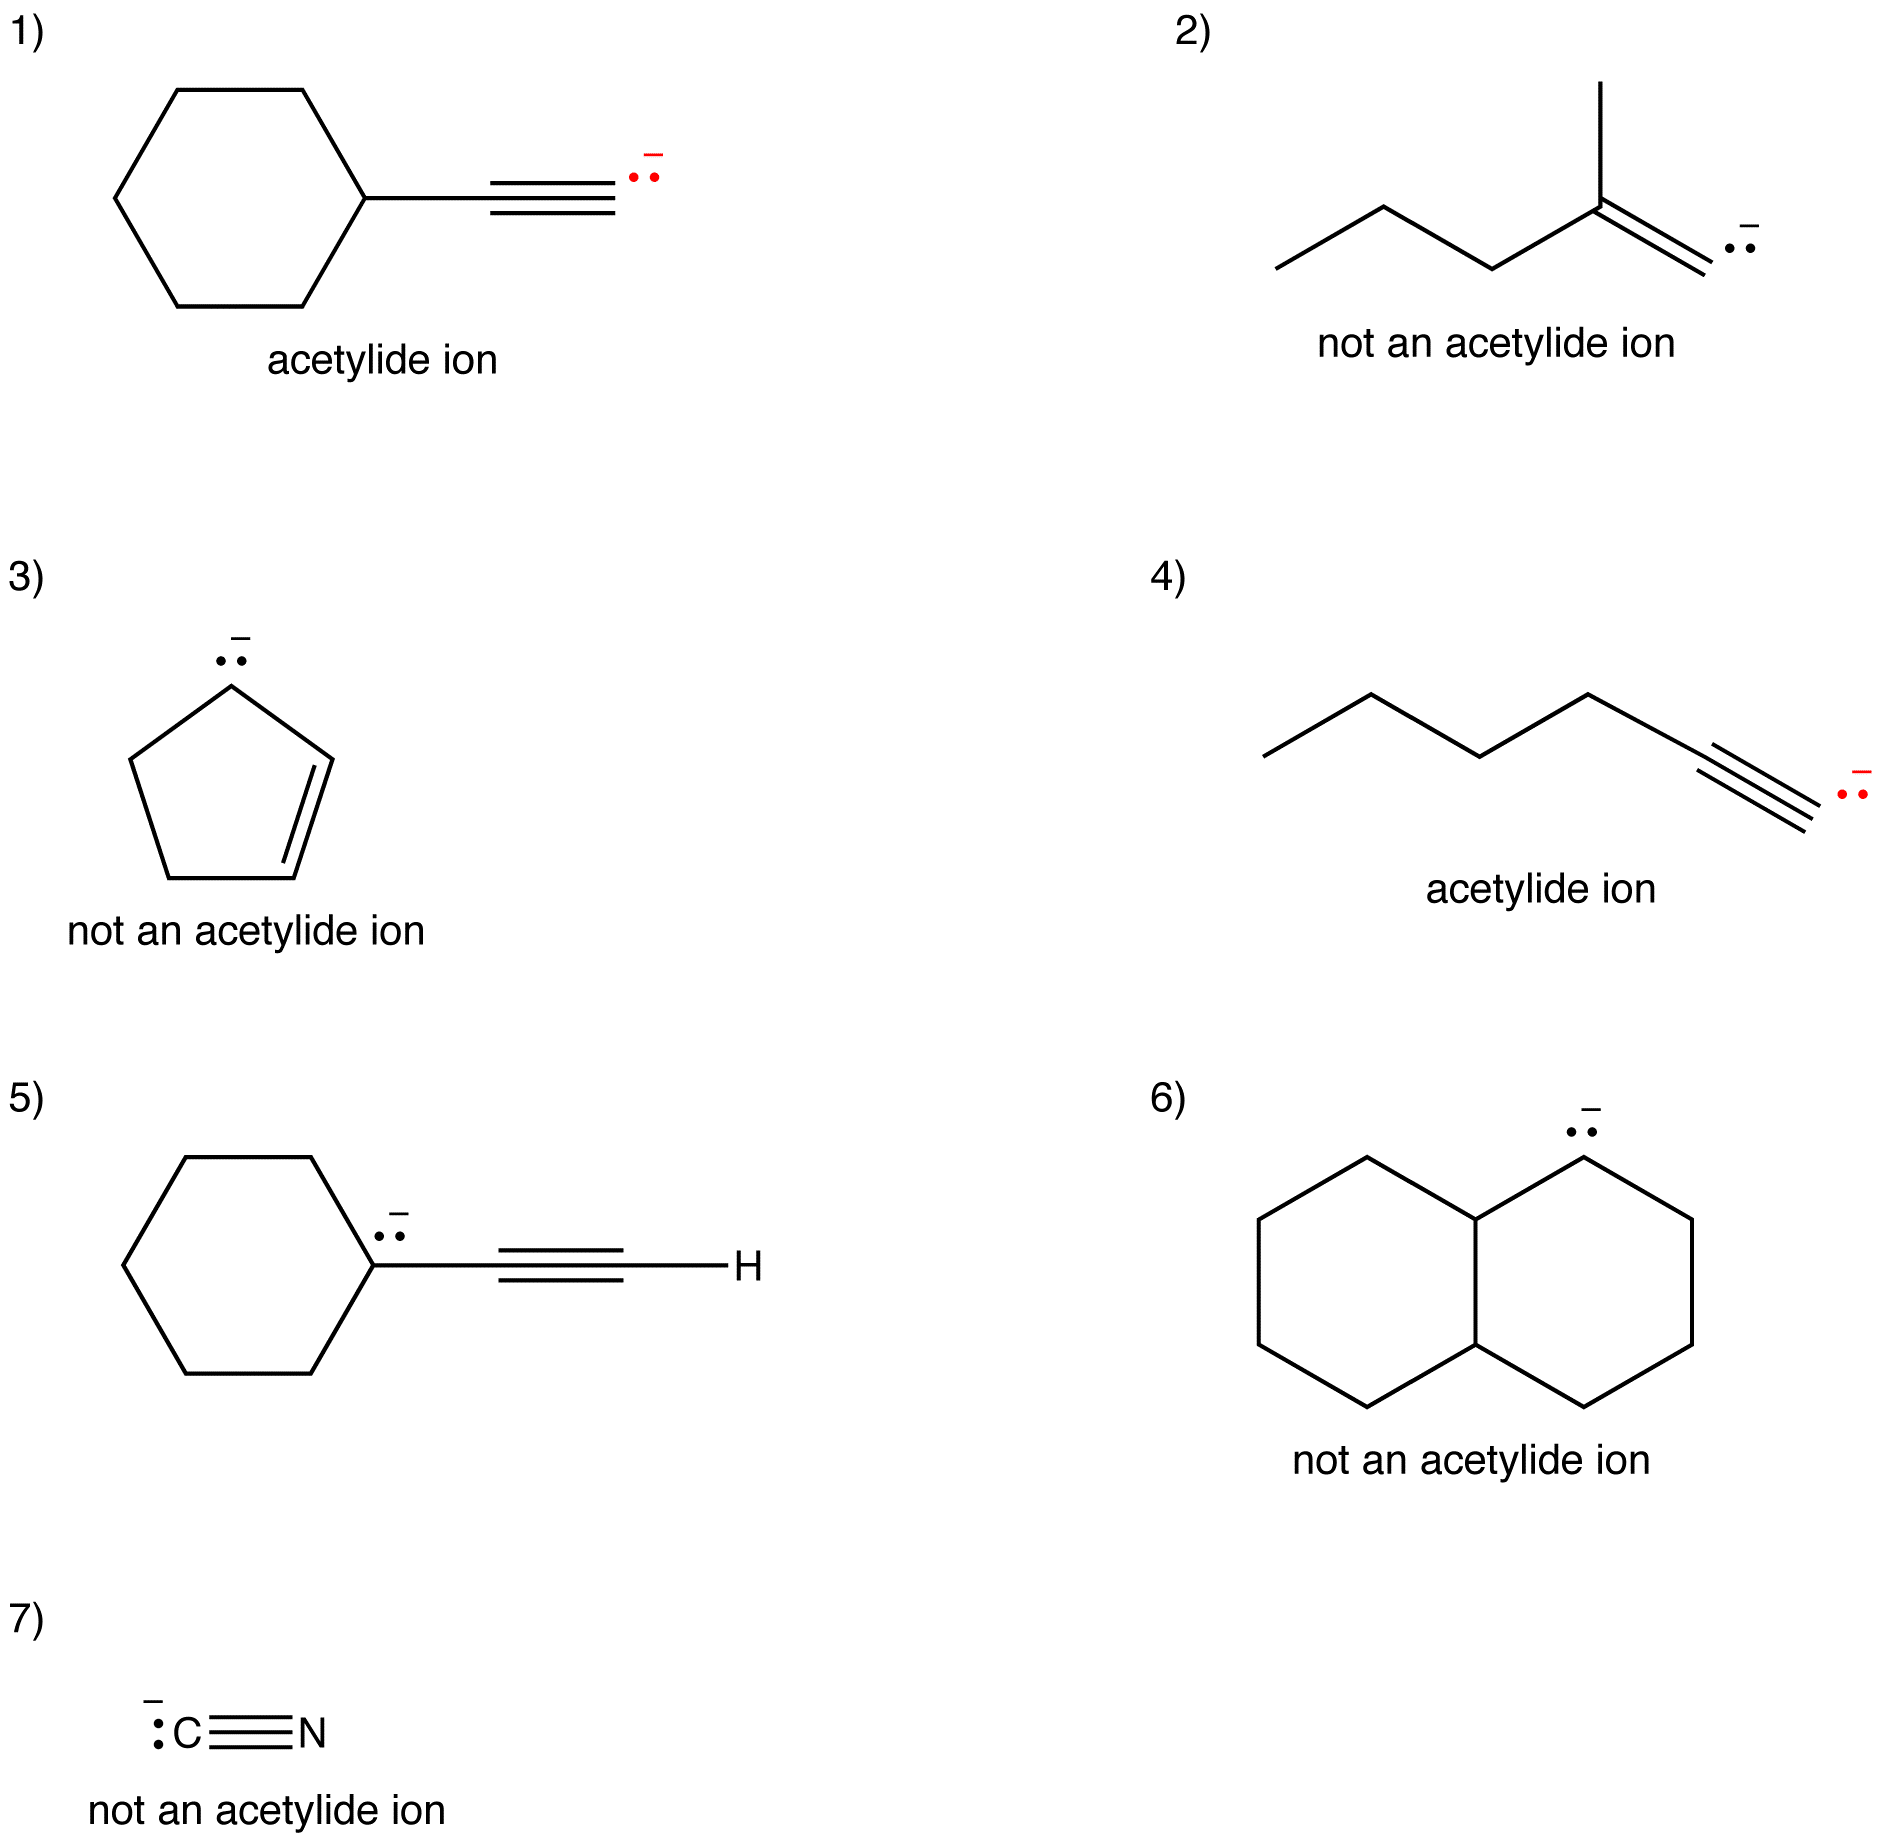 Acetylide Ion Answers